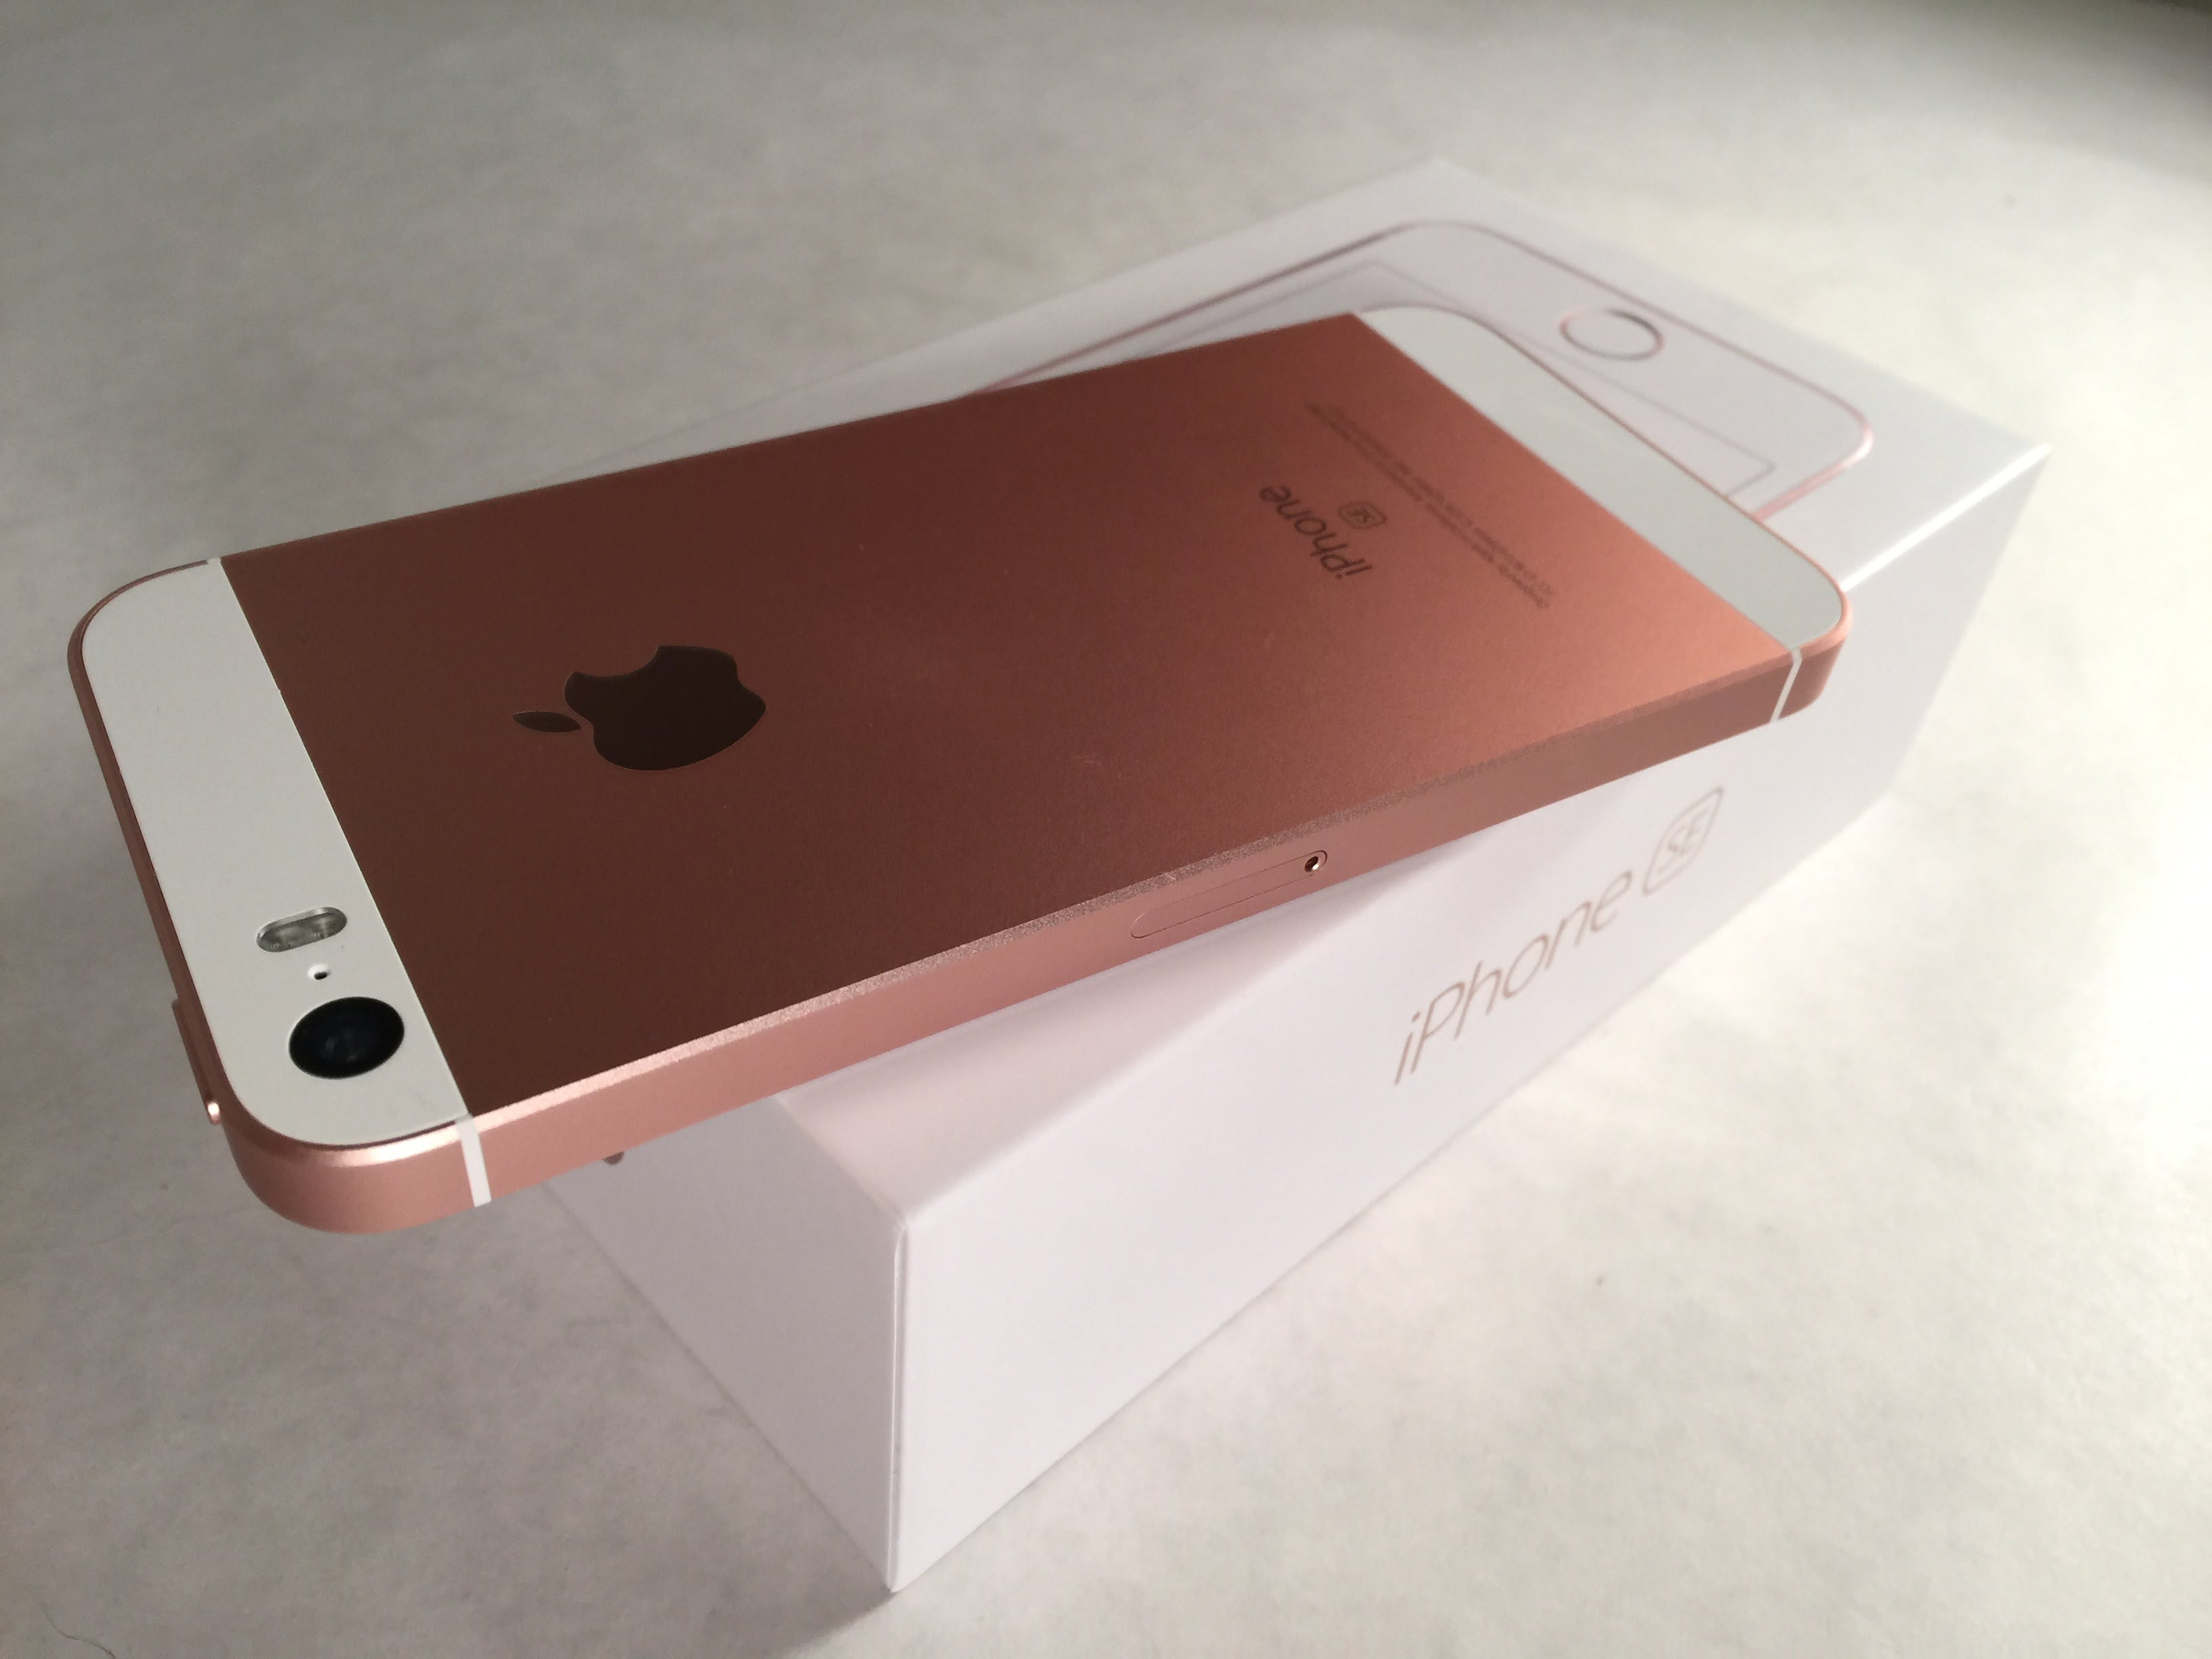 iPhone SE Rose Gold Unboxing - YouTube